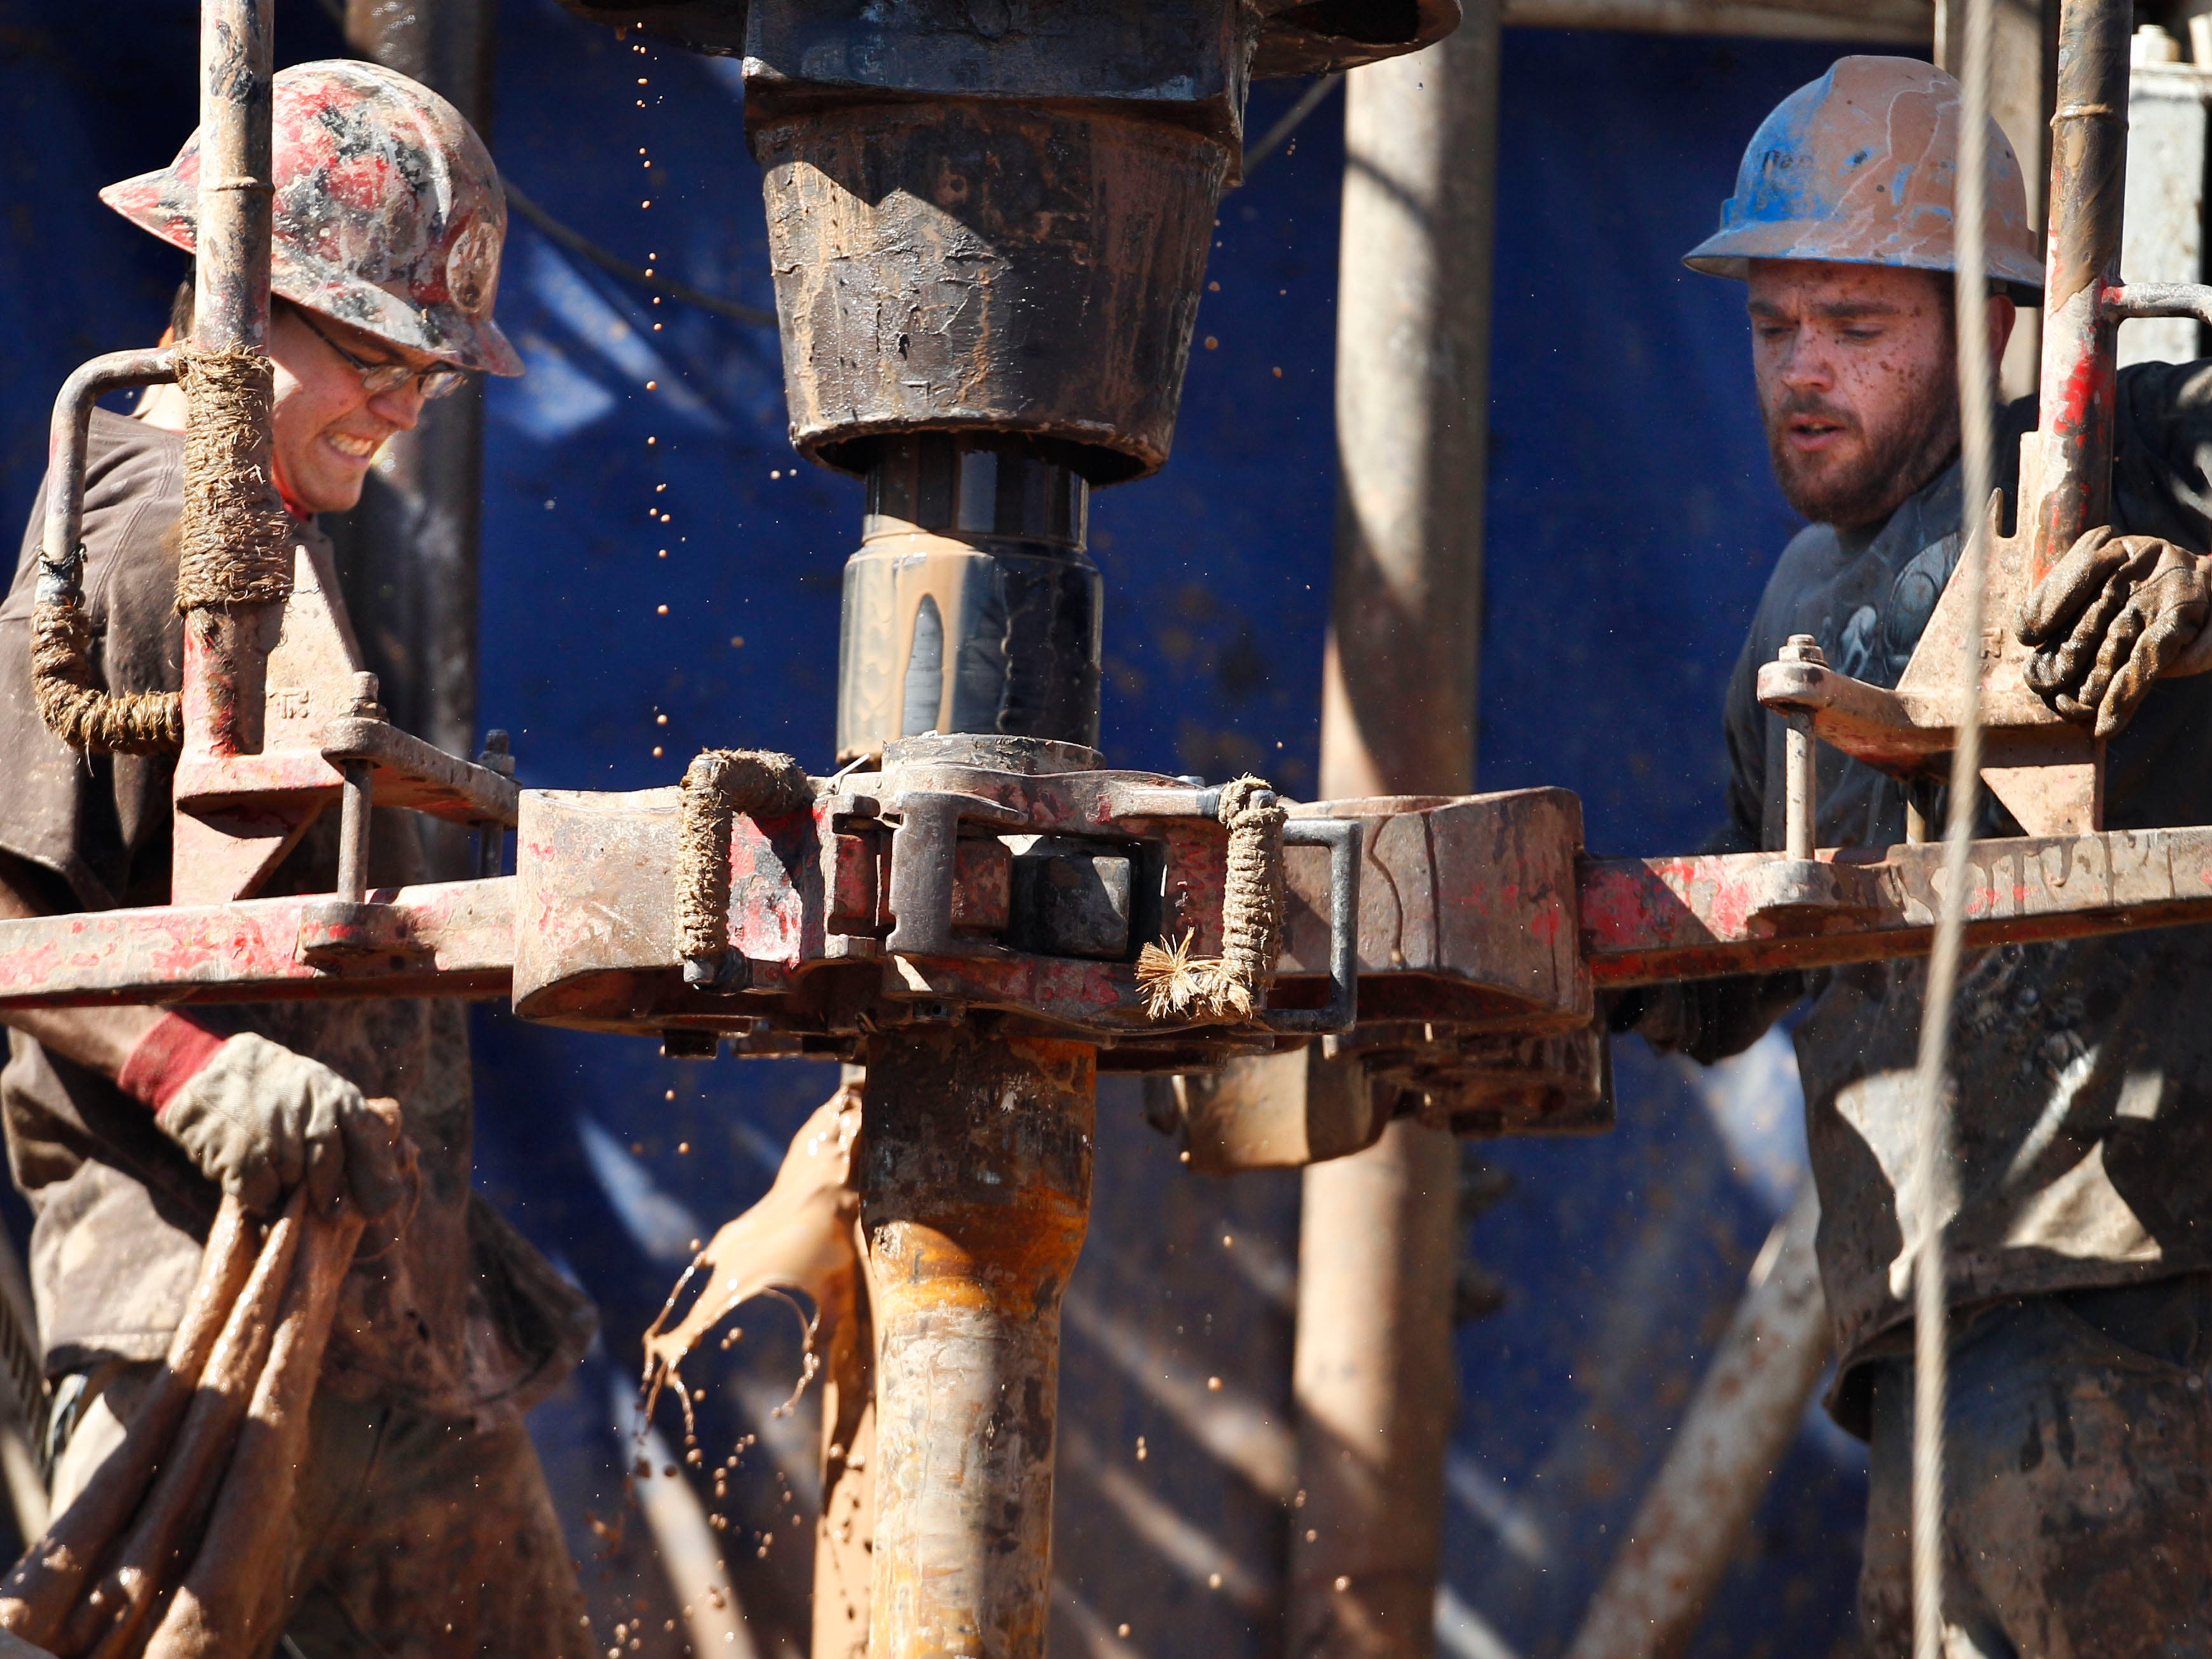 Natural gas and oil industry is a solid, long-term investment